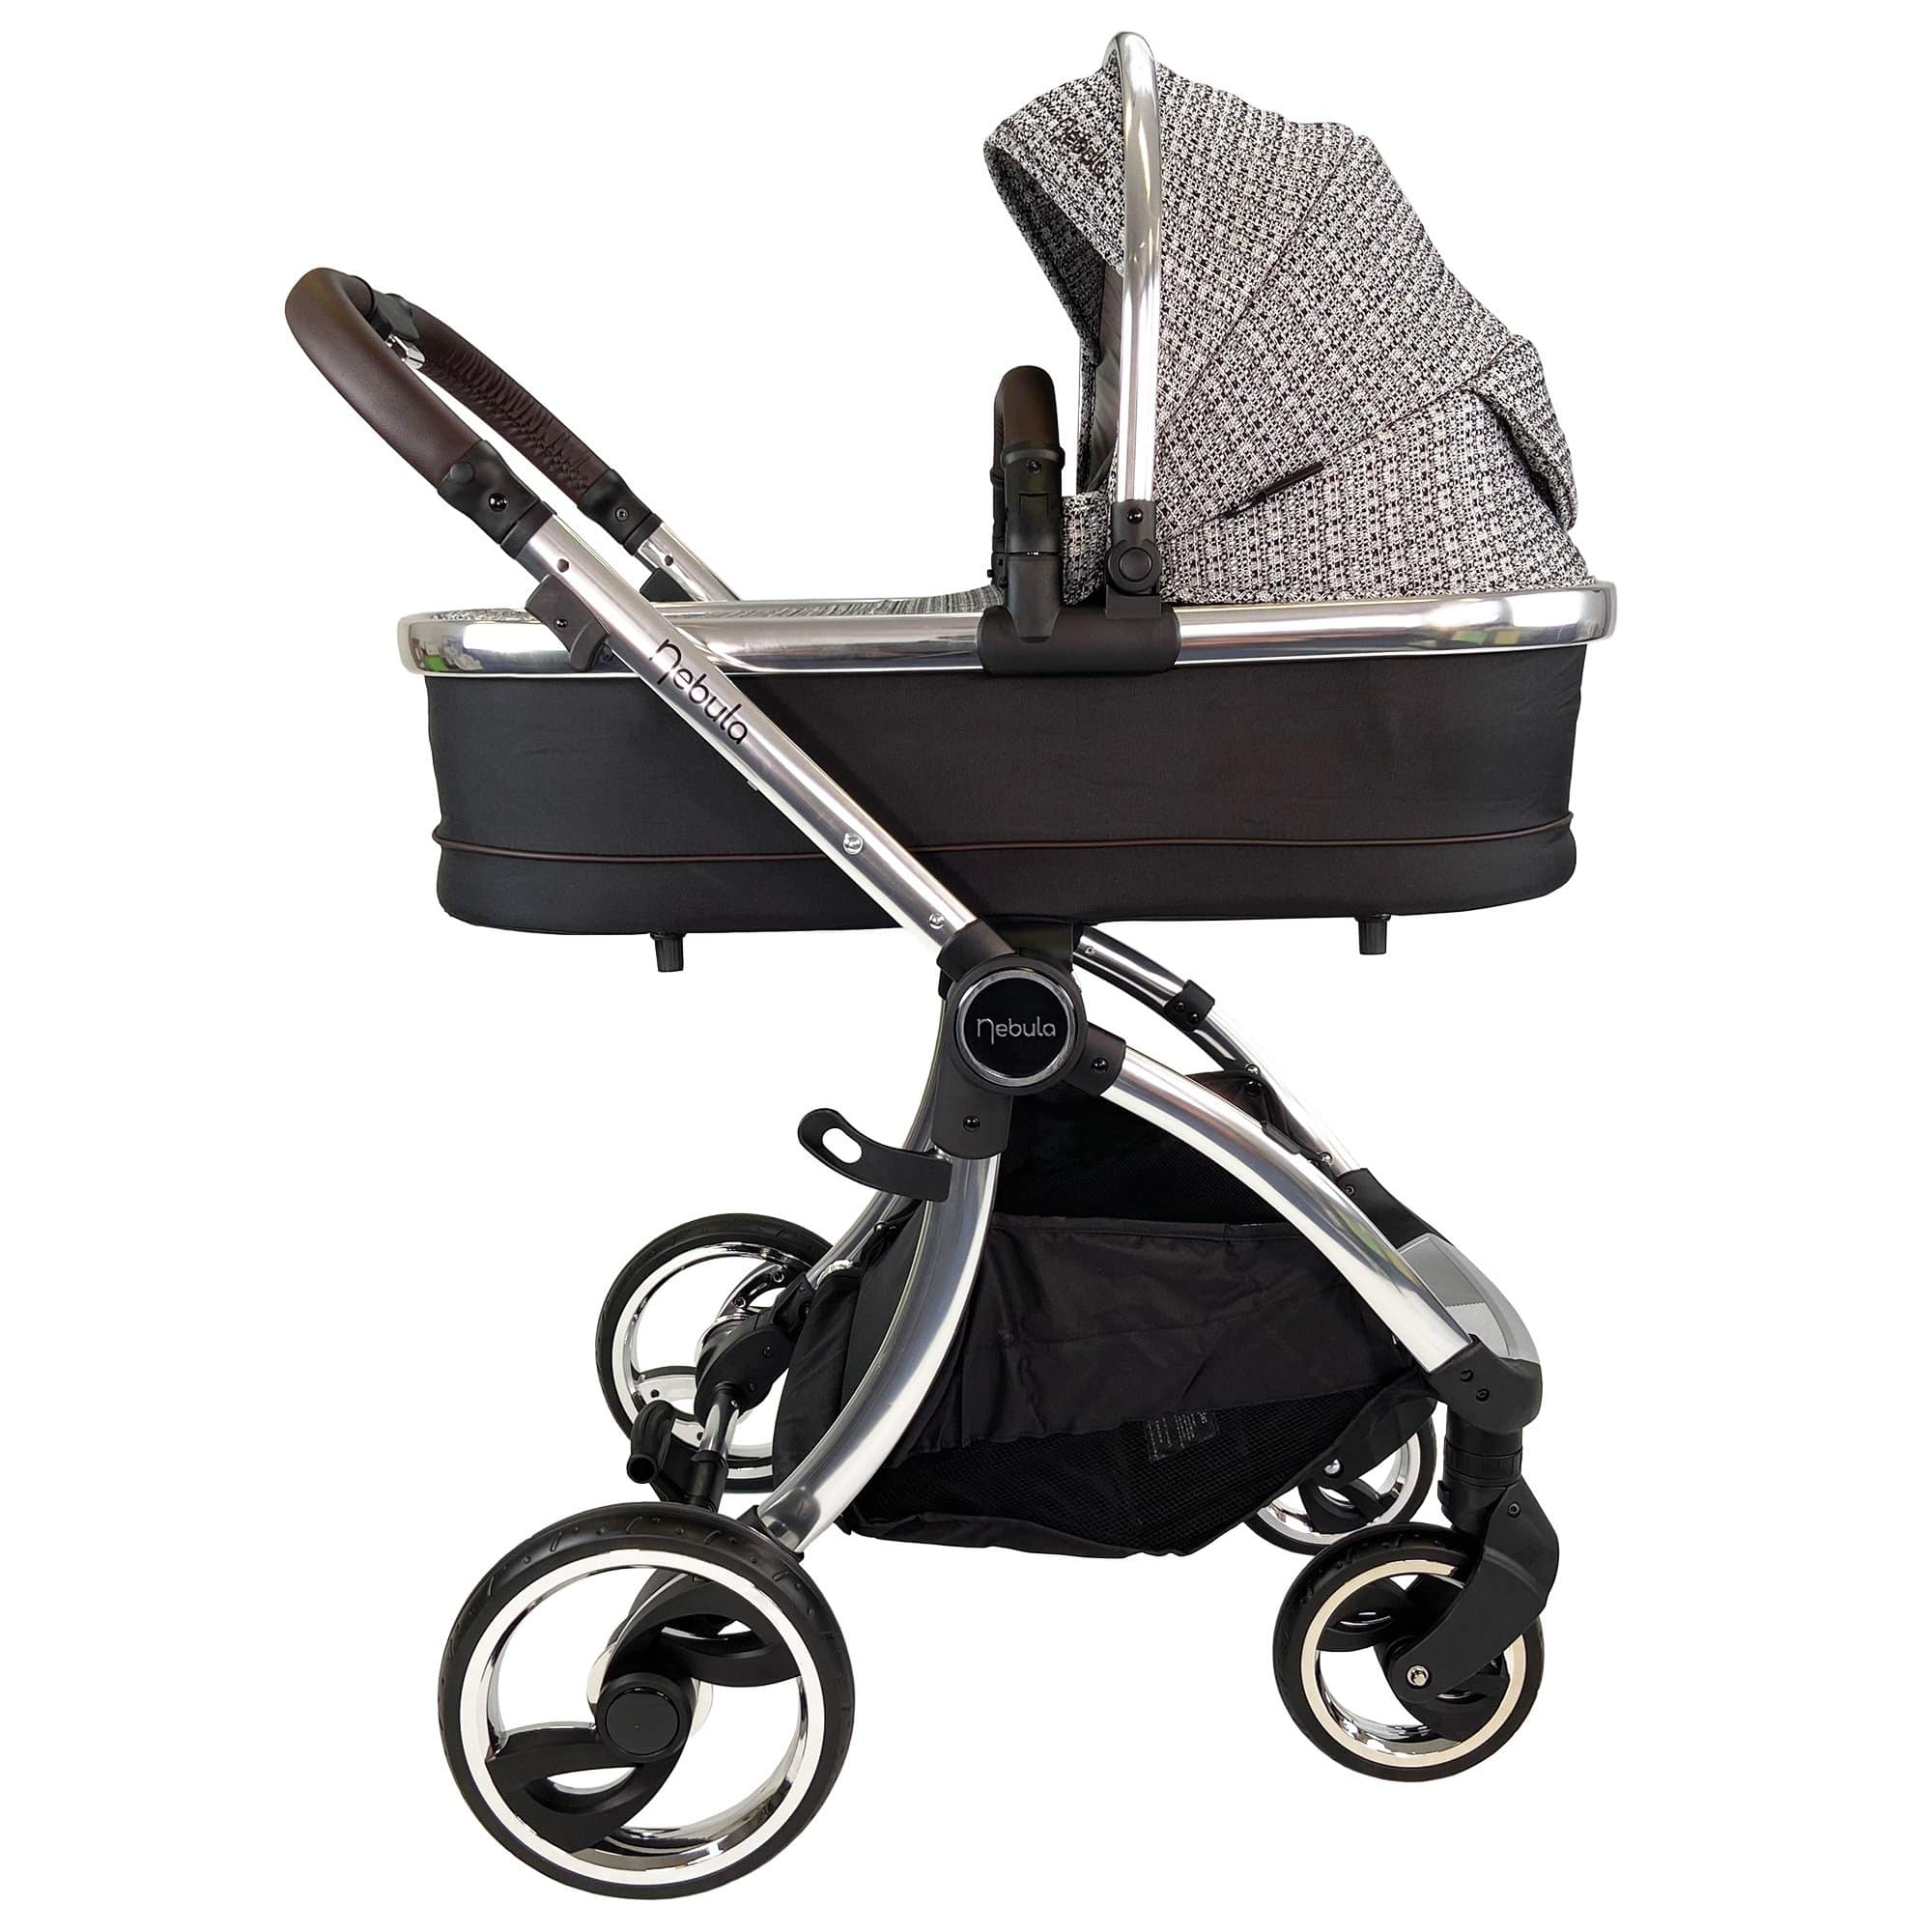 Venture Nebula Signature Edition baby stroller with carry cot